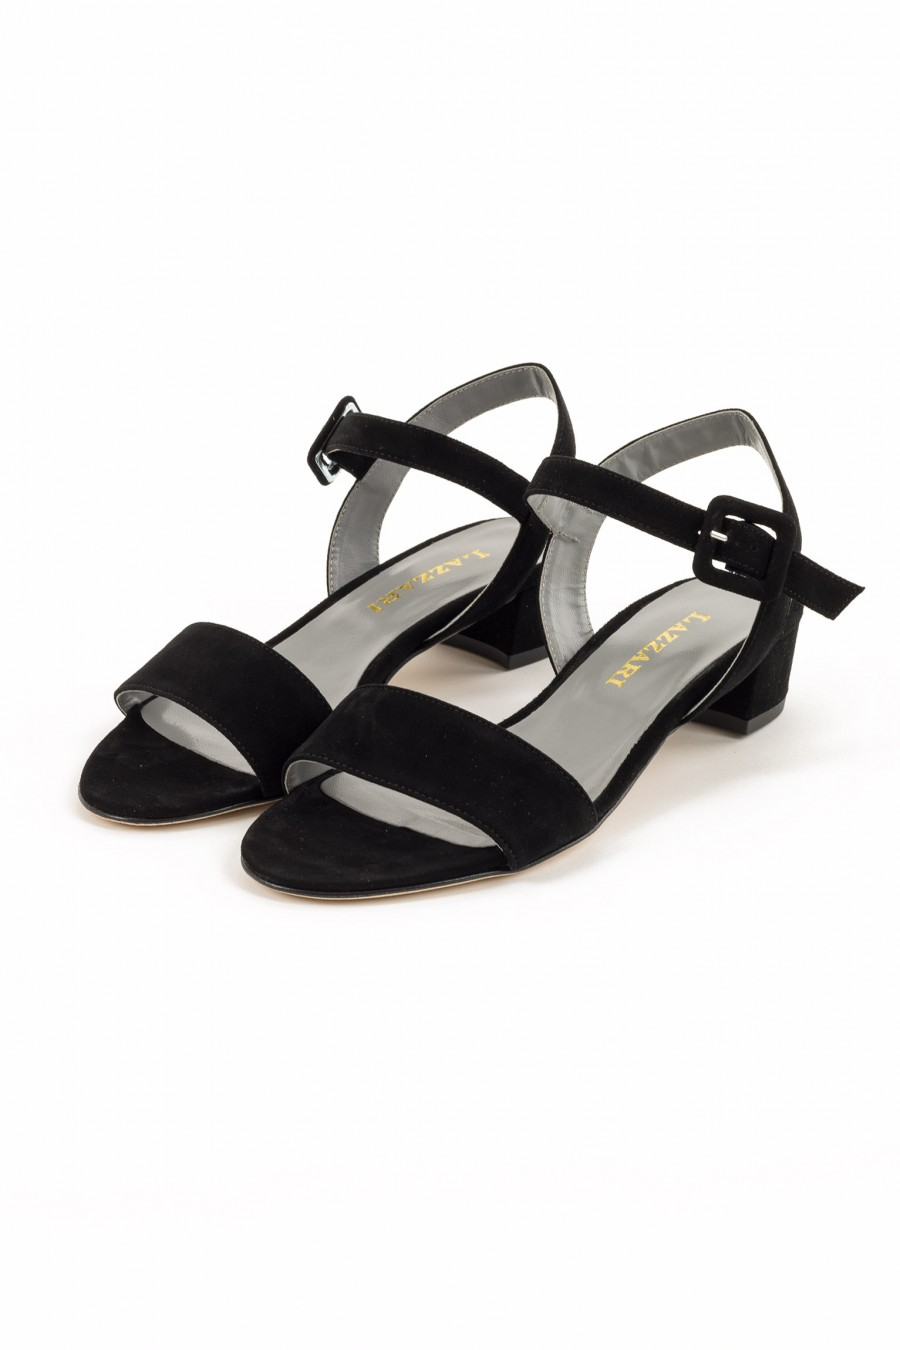 Sandal with covered buckle